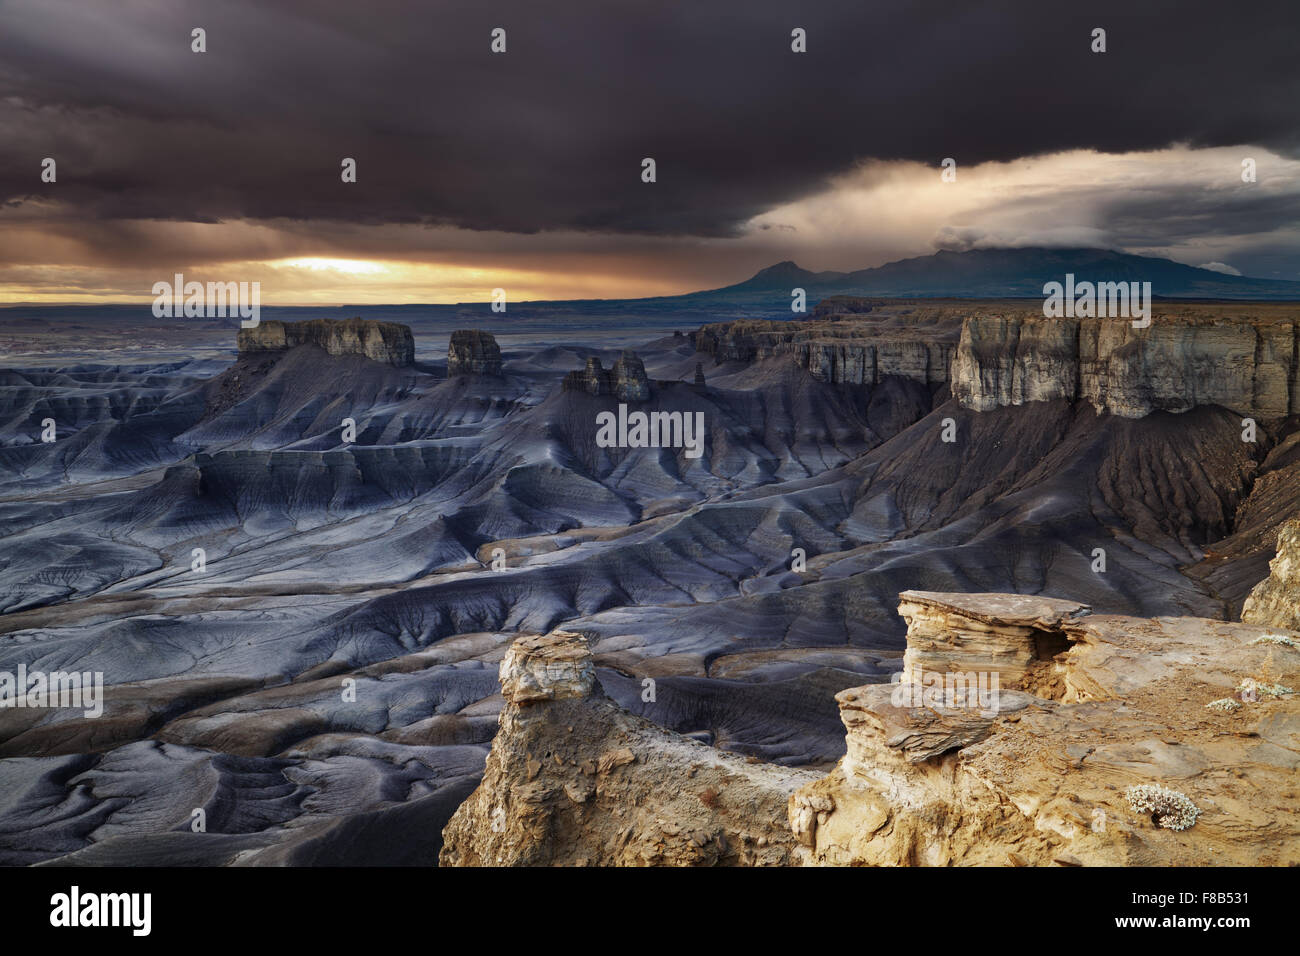 Moonscape Overlook at sunrise in Utah desert, USA - Stock Image